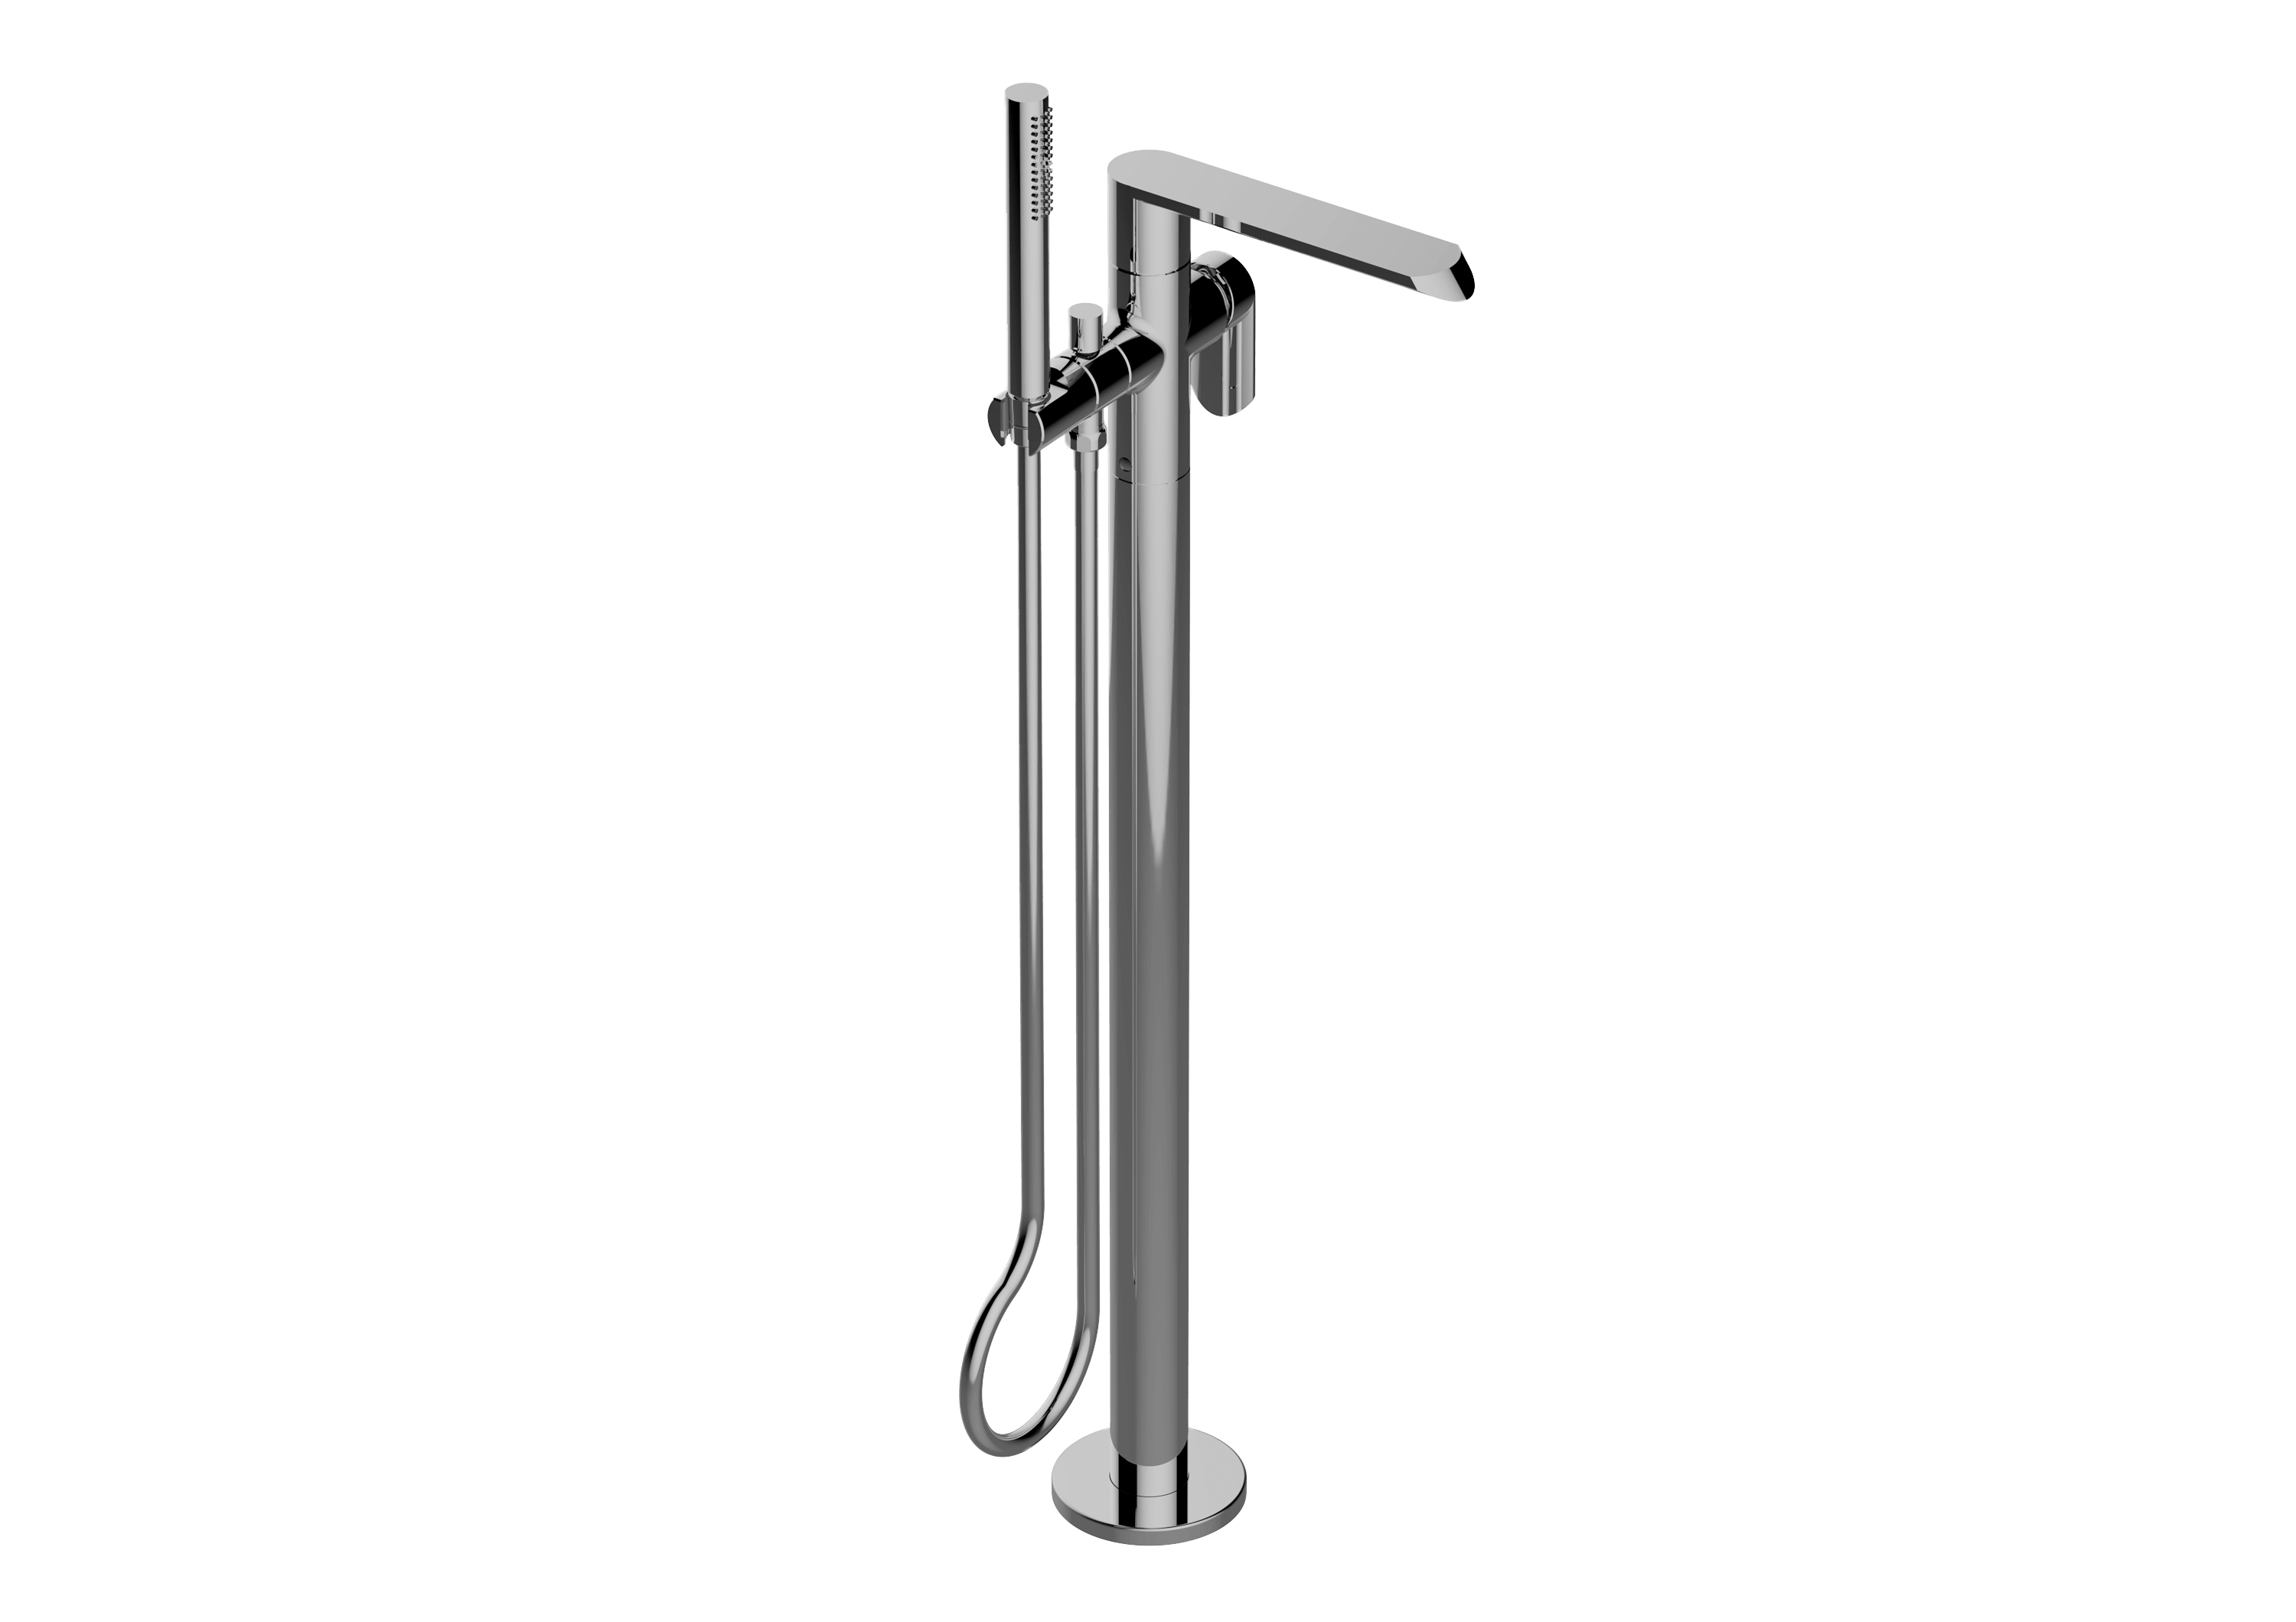 mounted mount improvement freestanding wayfair tub faucets pdp home ca single banff ferness reviews handle filler floor